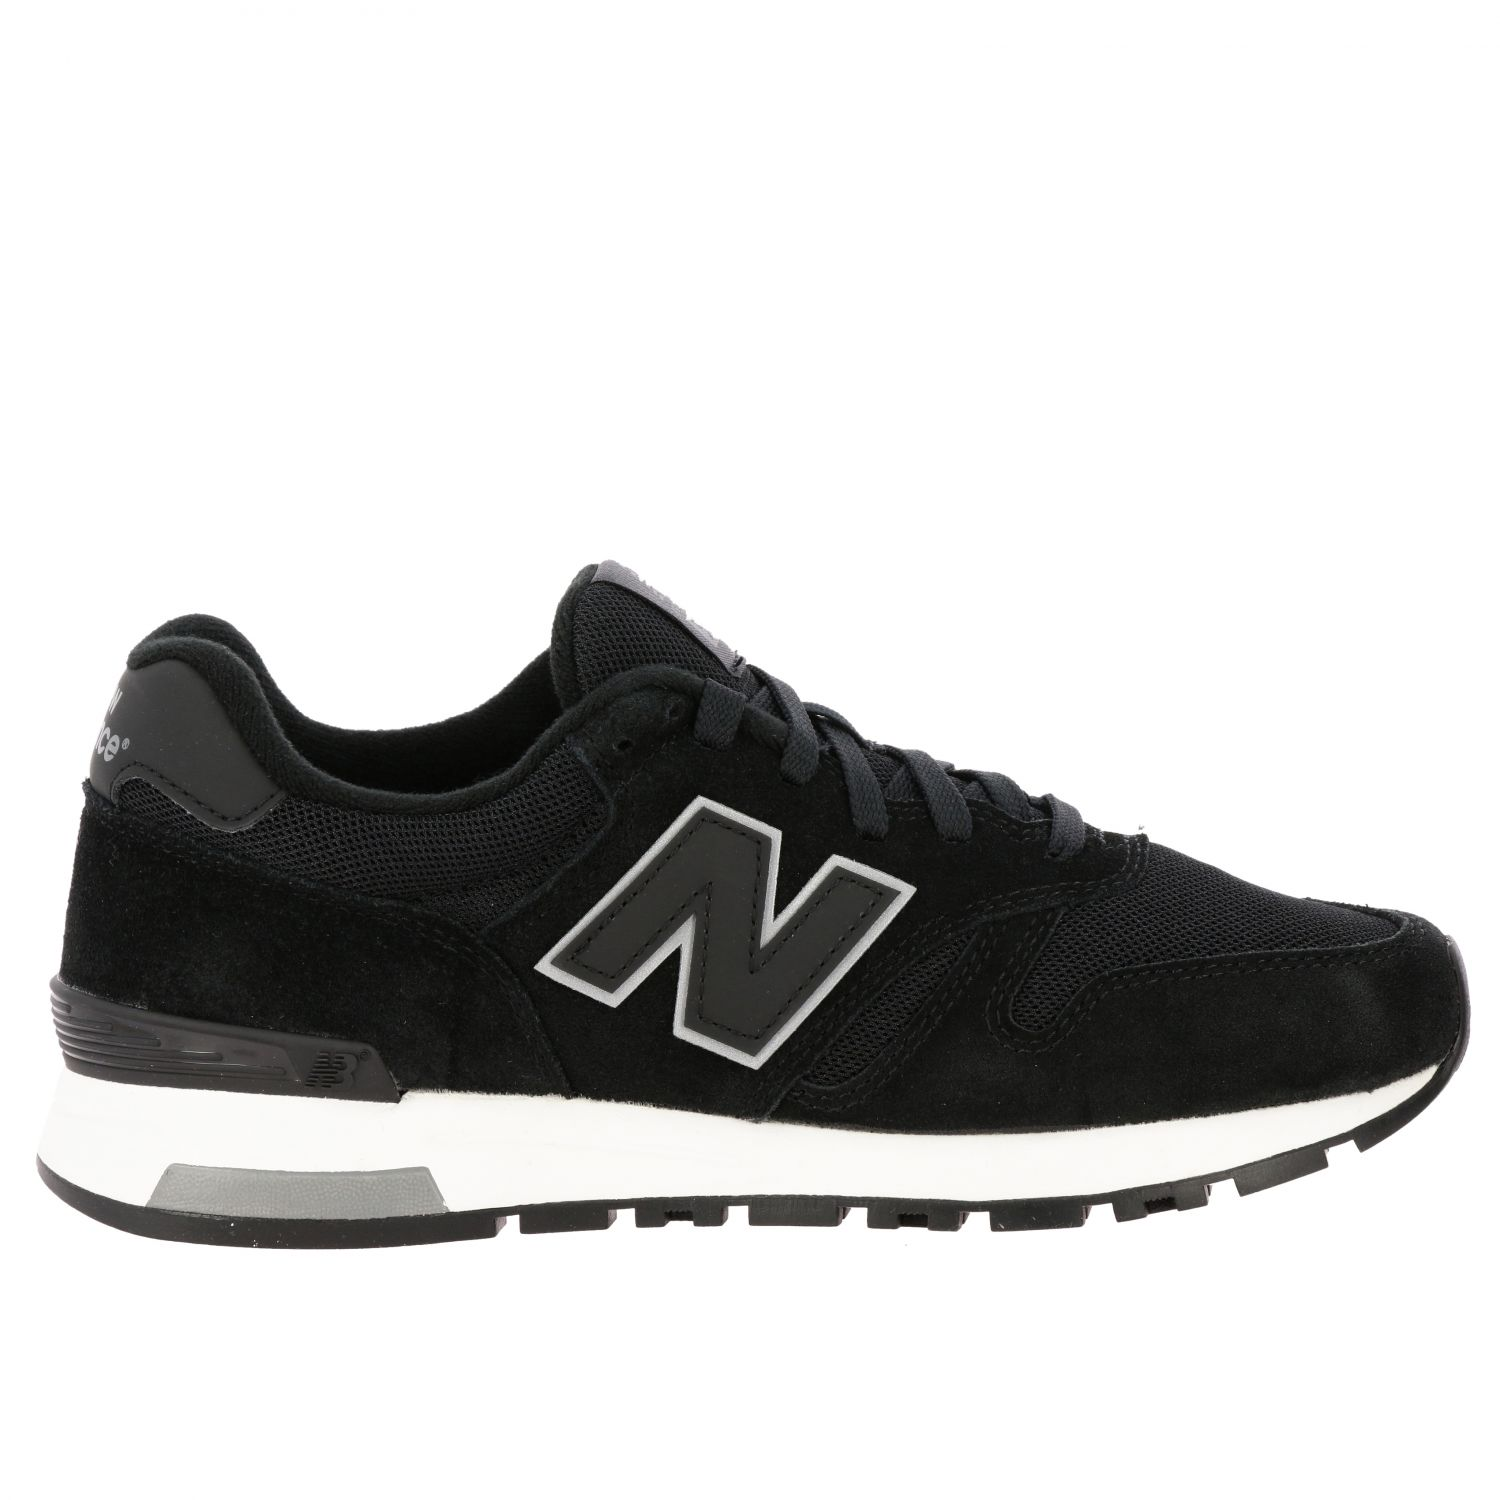 Trainers New Balance: Shoes men New Balance black 1